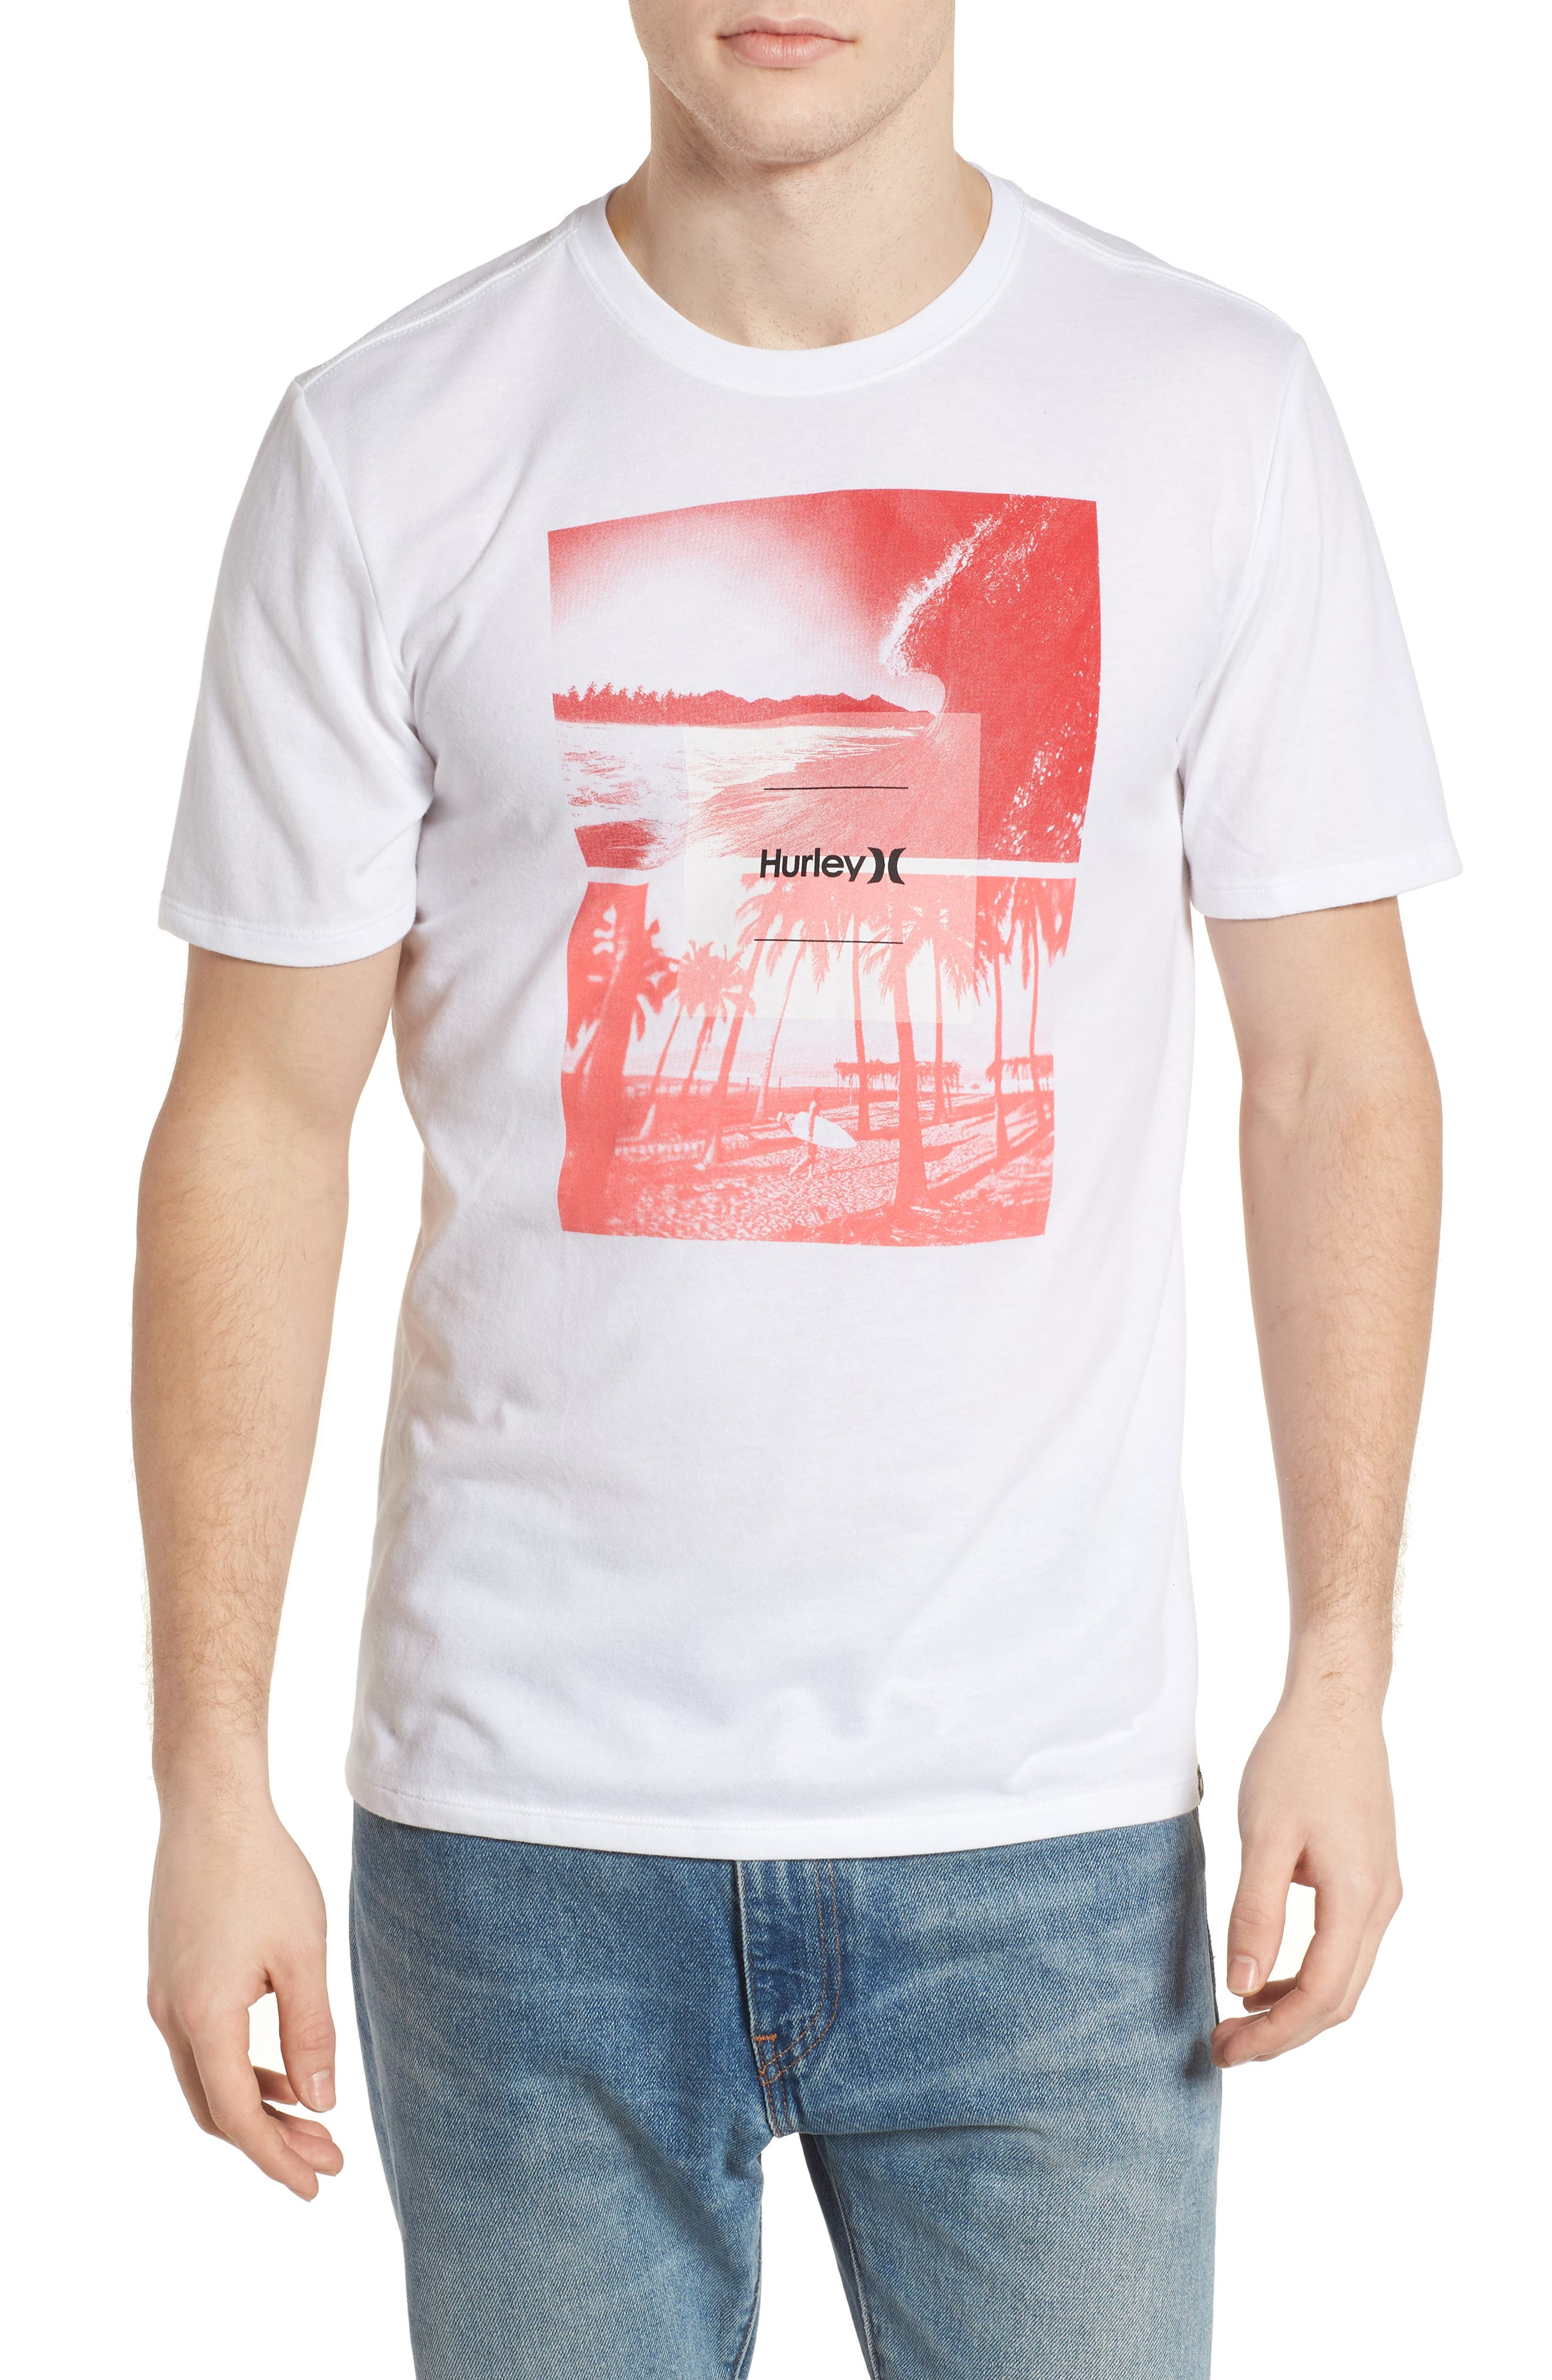 Hurley Cause & Effect Dri-FIT T-Shirt